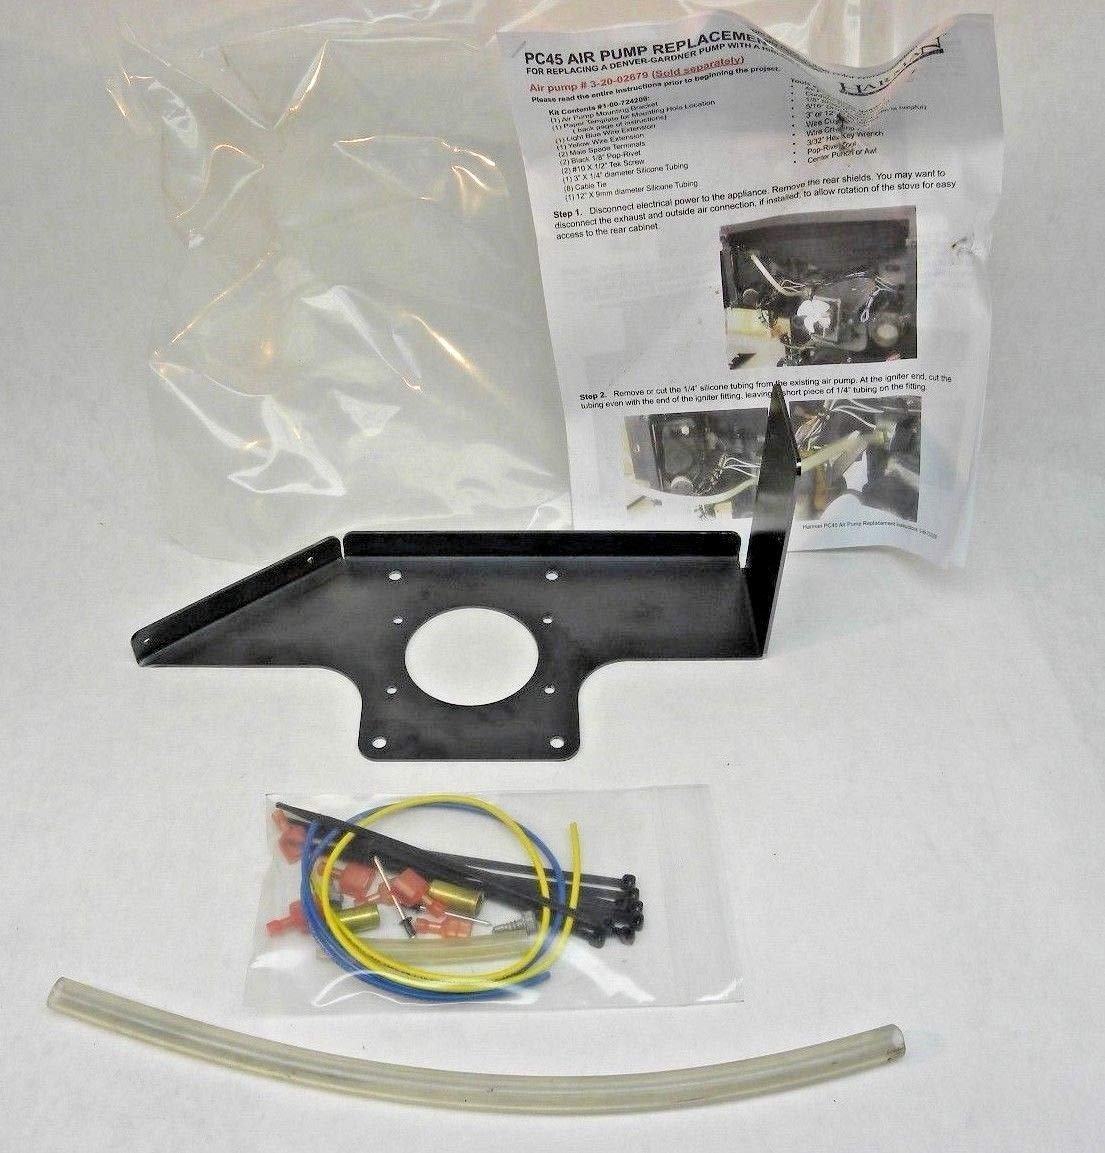 New Air Pump Mounting Kit for The Harman PC45 Pellet Stove (1-00-724209) WE